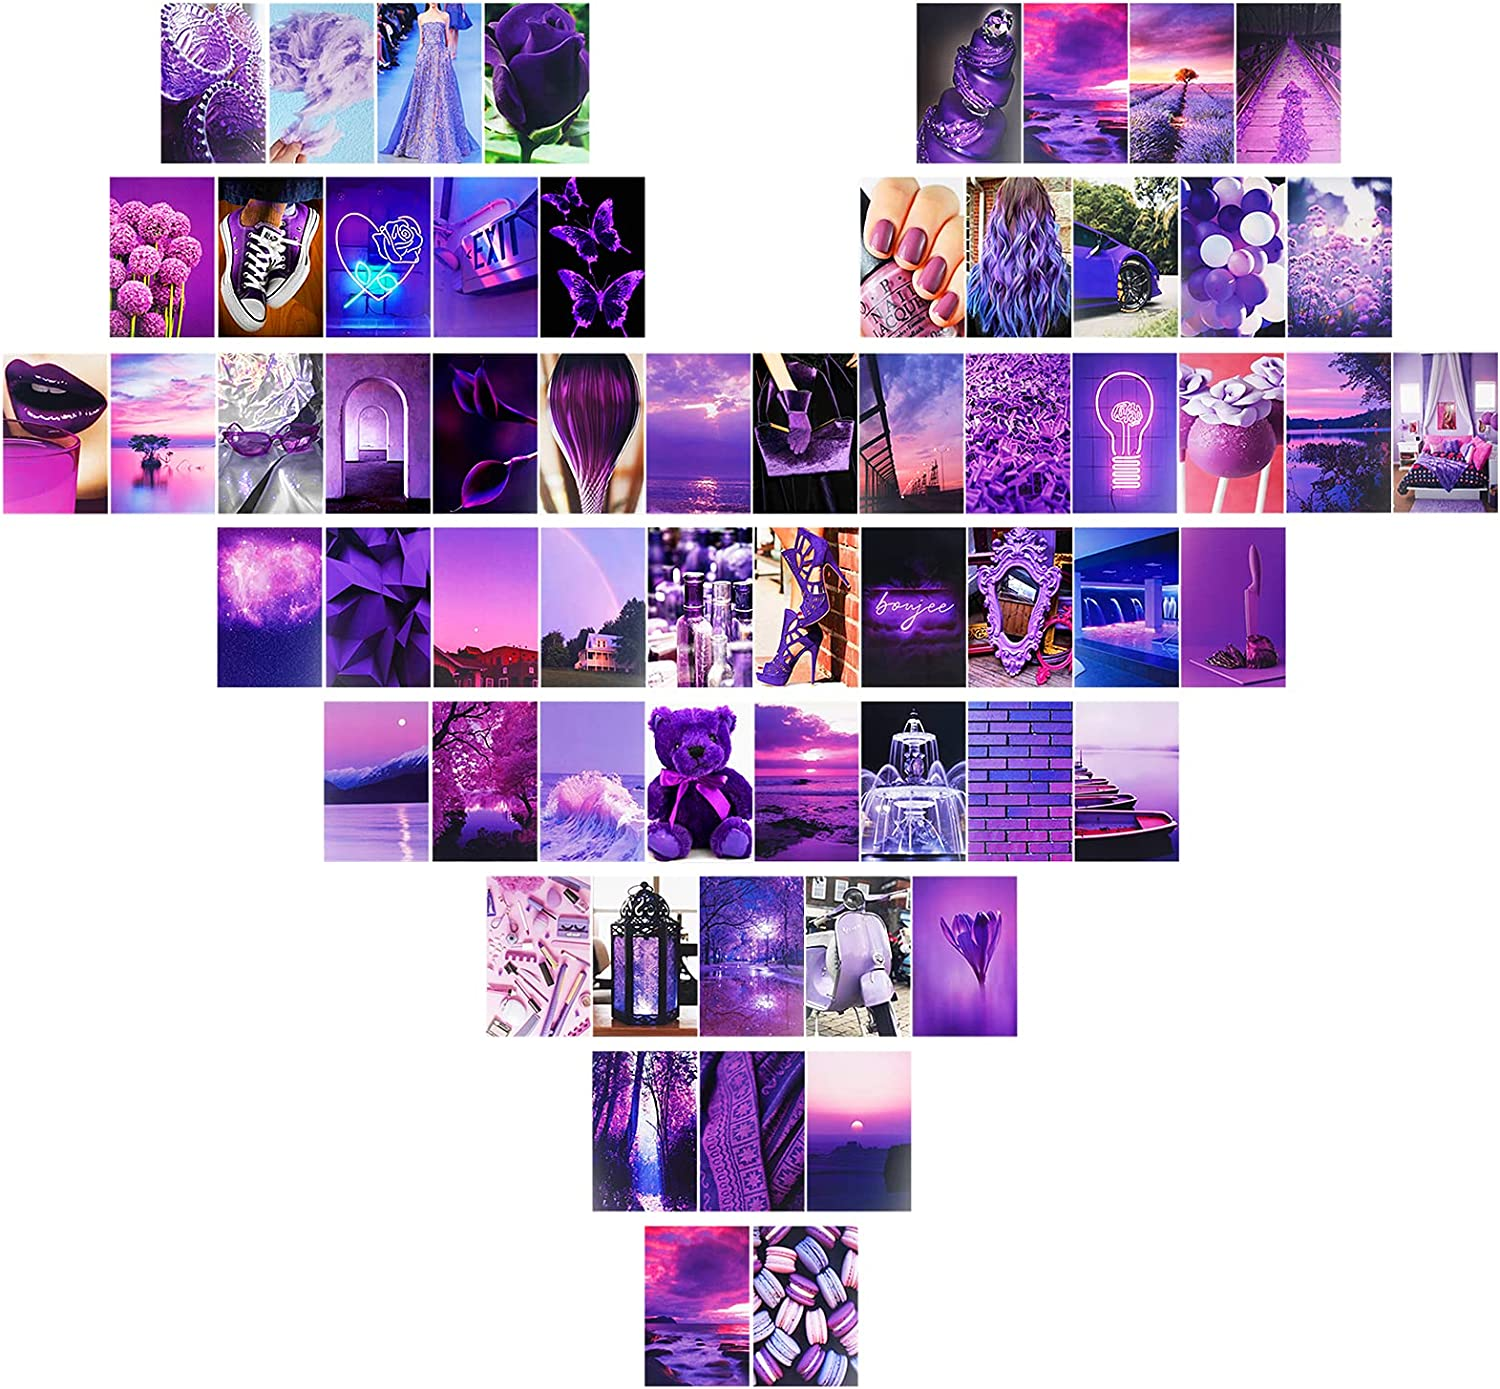 Aesthetic Room Decor, 60 pcs Room Decor for Teen Girls Collage Kits Wall Art Photos with Stickers Purple Indie Room Decor for Bedroom, Home, Kitchen, Office